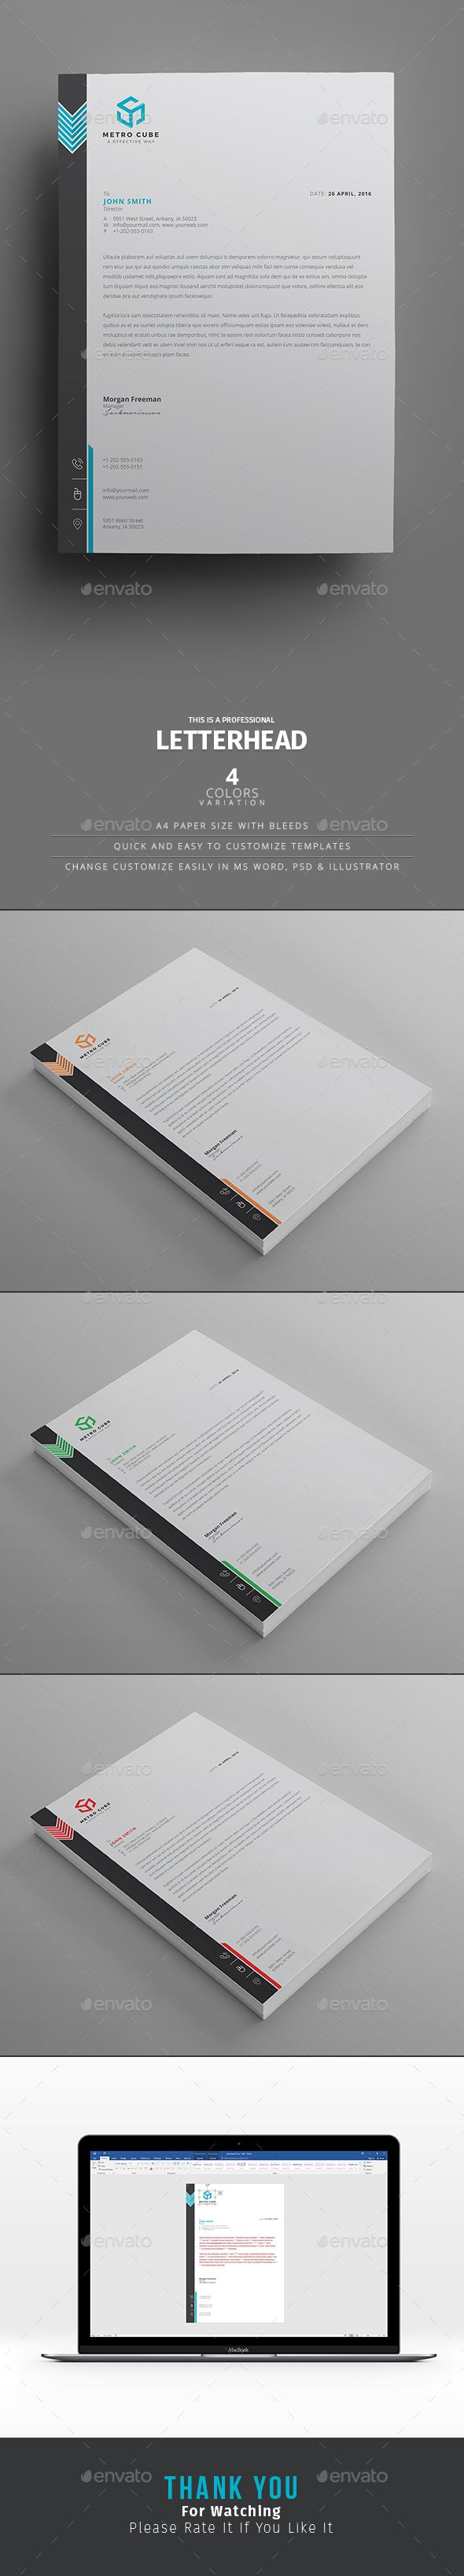 best 25 letterhead design ideas on pinterest